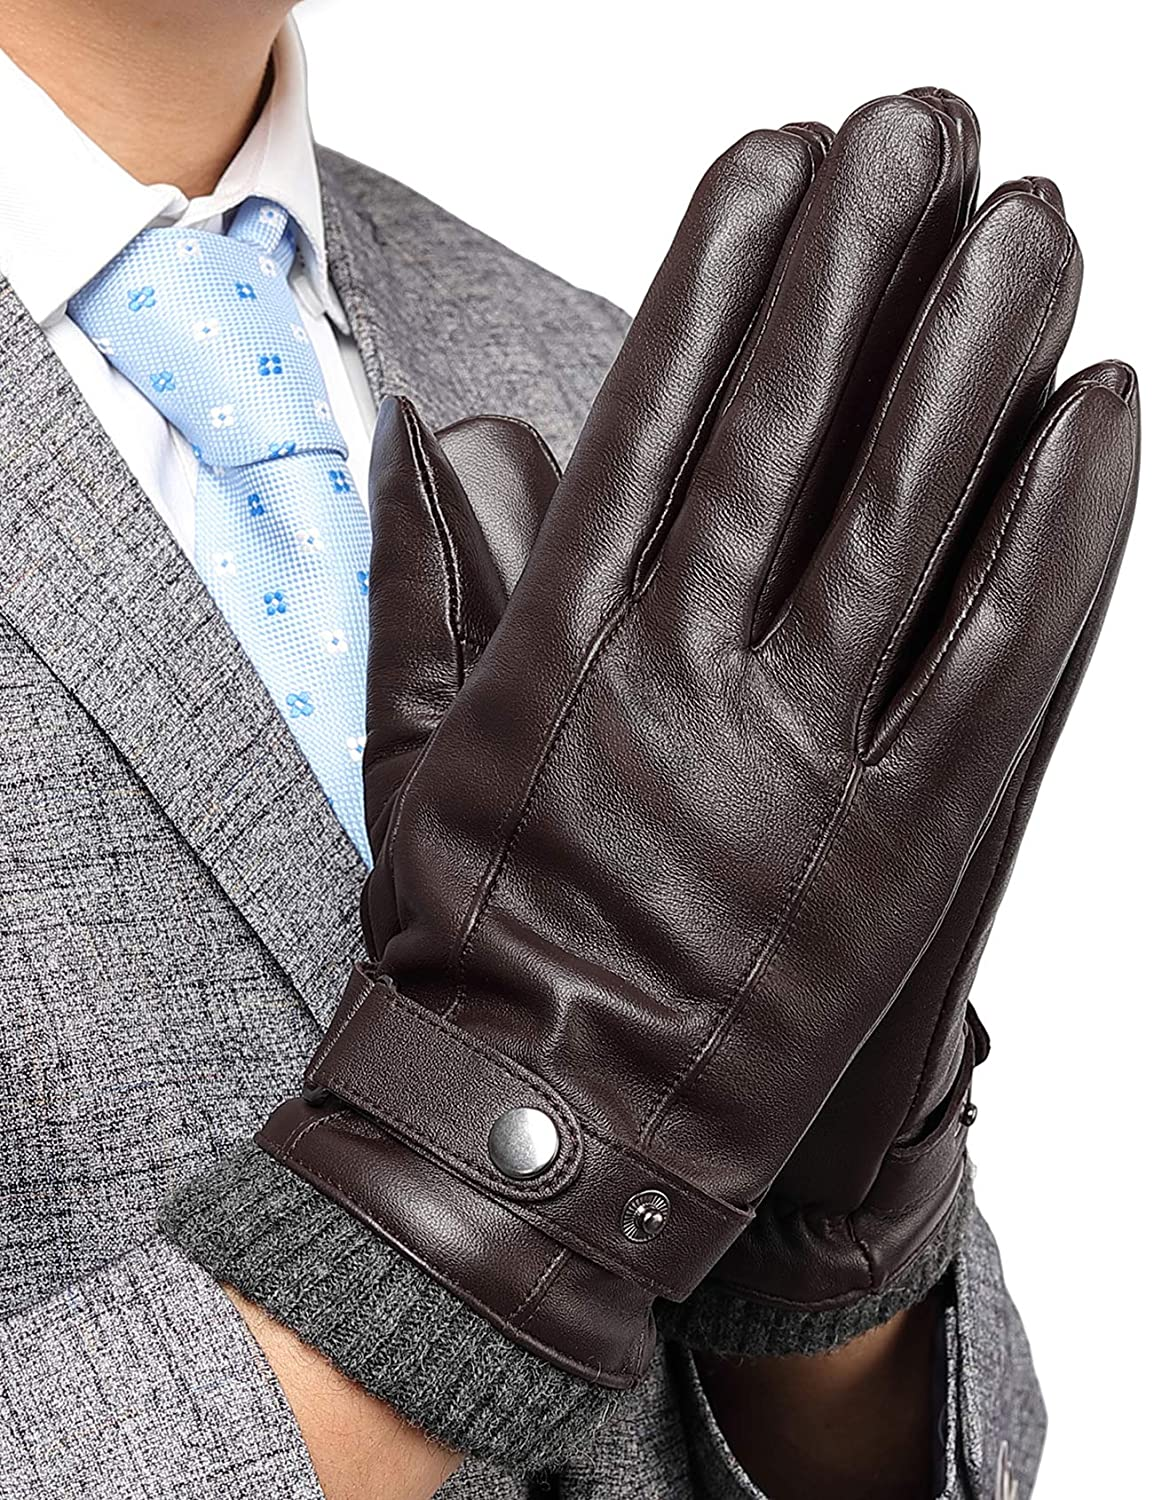 Mens Leather Gloves Touchscreeen Winter Warm Gloves with 3M Thinsulate Texting Driving Outdoor Mittens Gifts